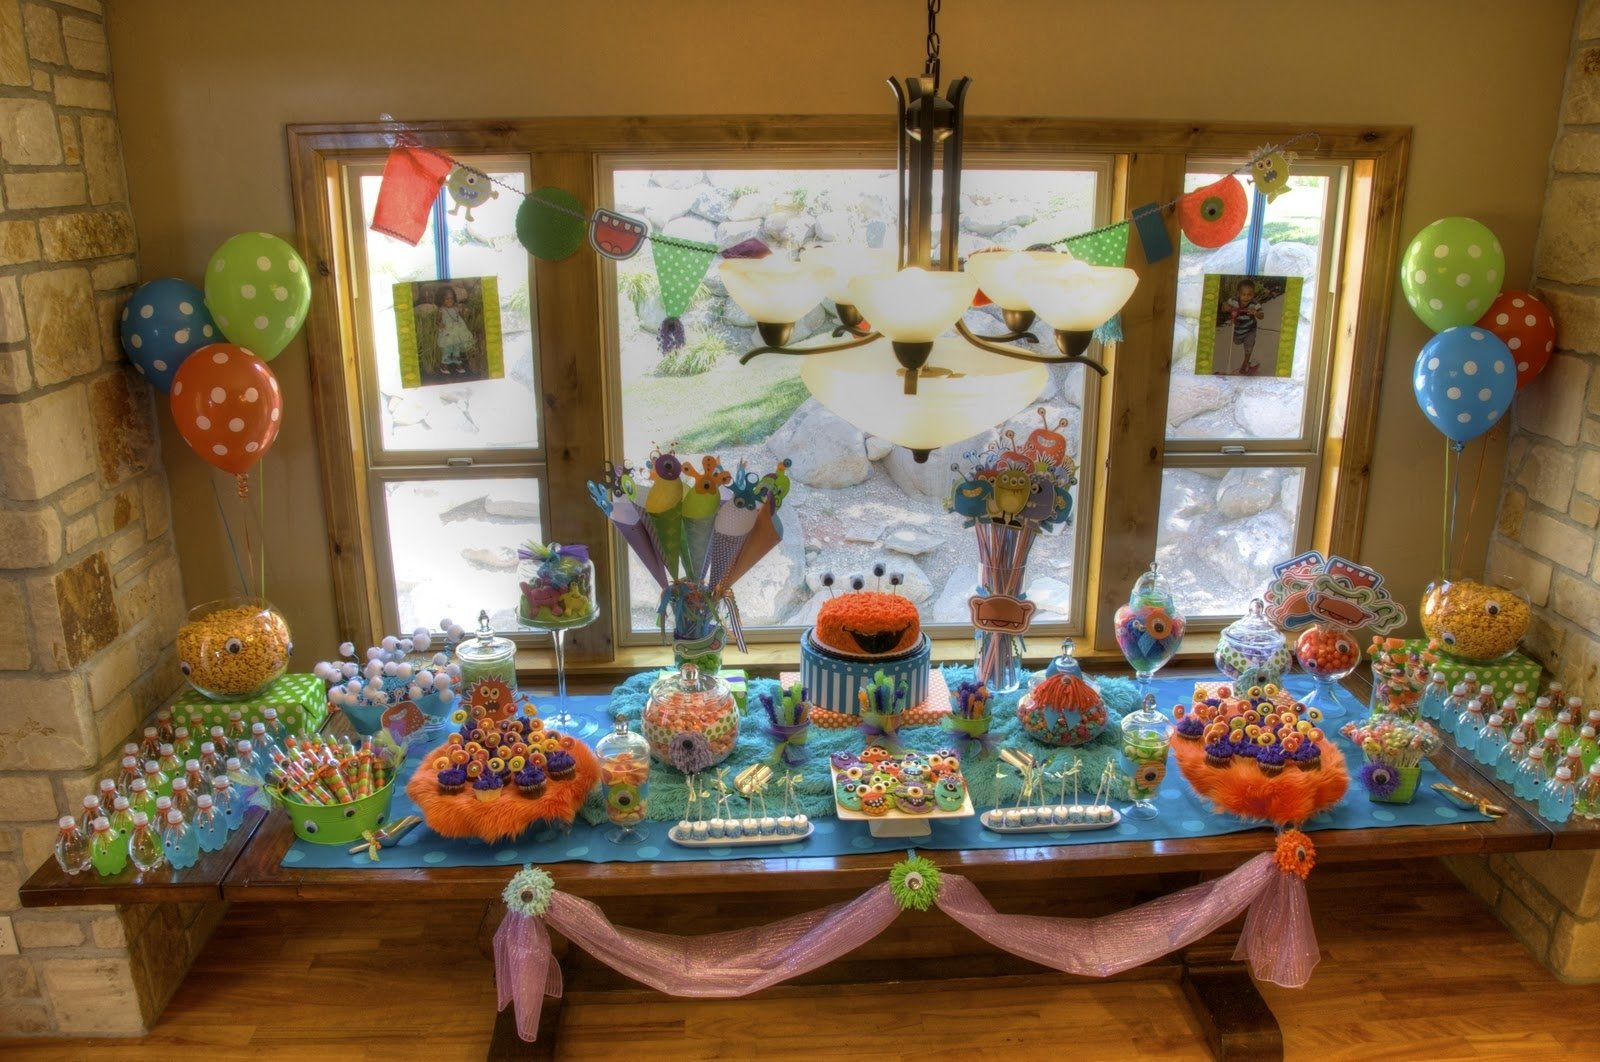 10 Pretty Party Ideas For 2 Year Old Boy Cute Birthday Entertainment